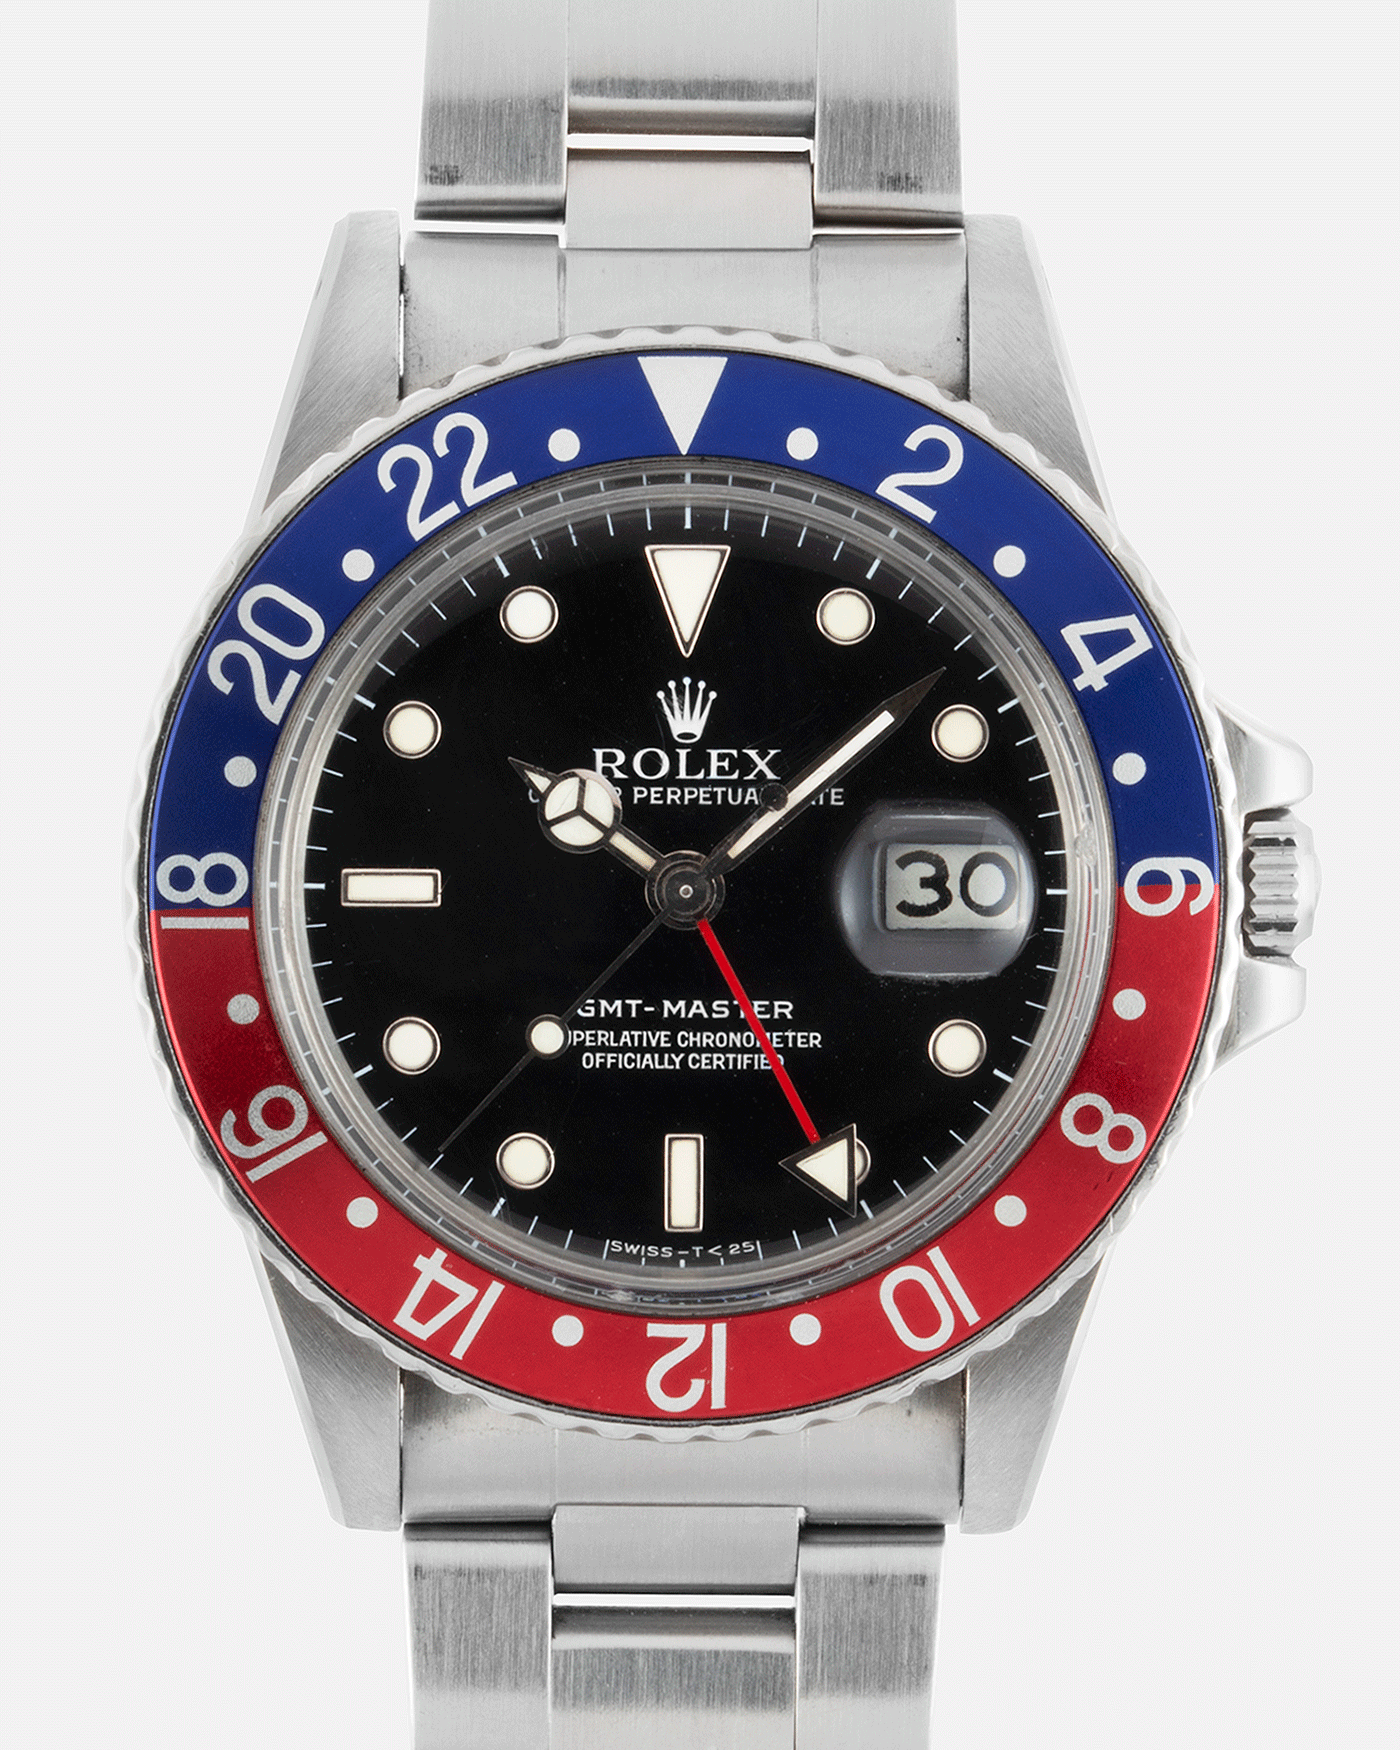 Rolex GMT-Master Ref. 16750 Vintage Watch  | S.Song Vintage Watches